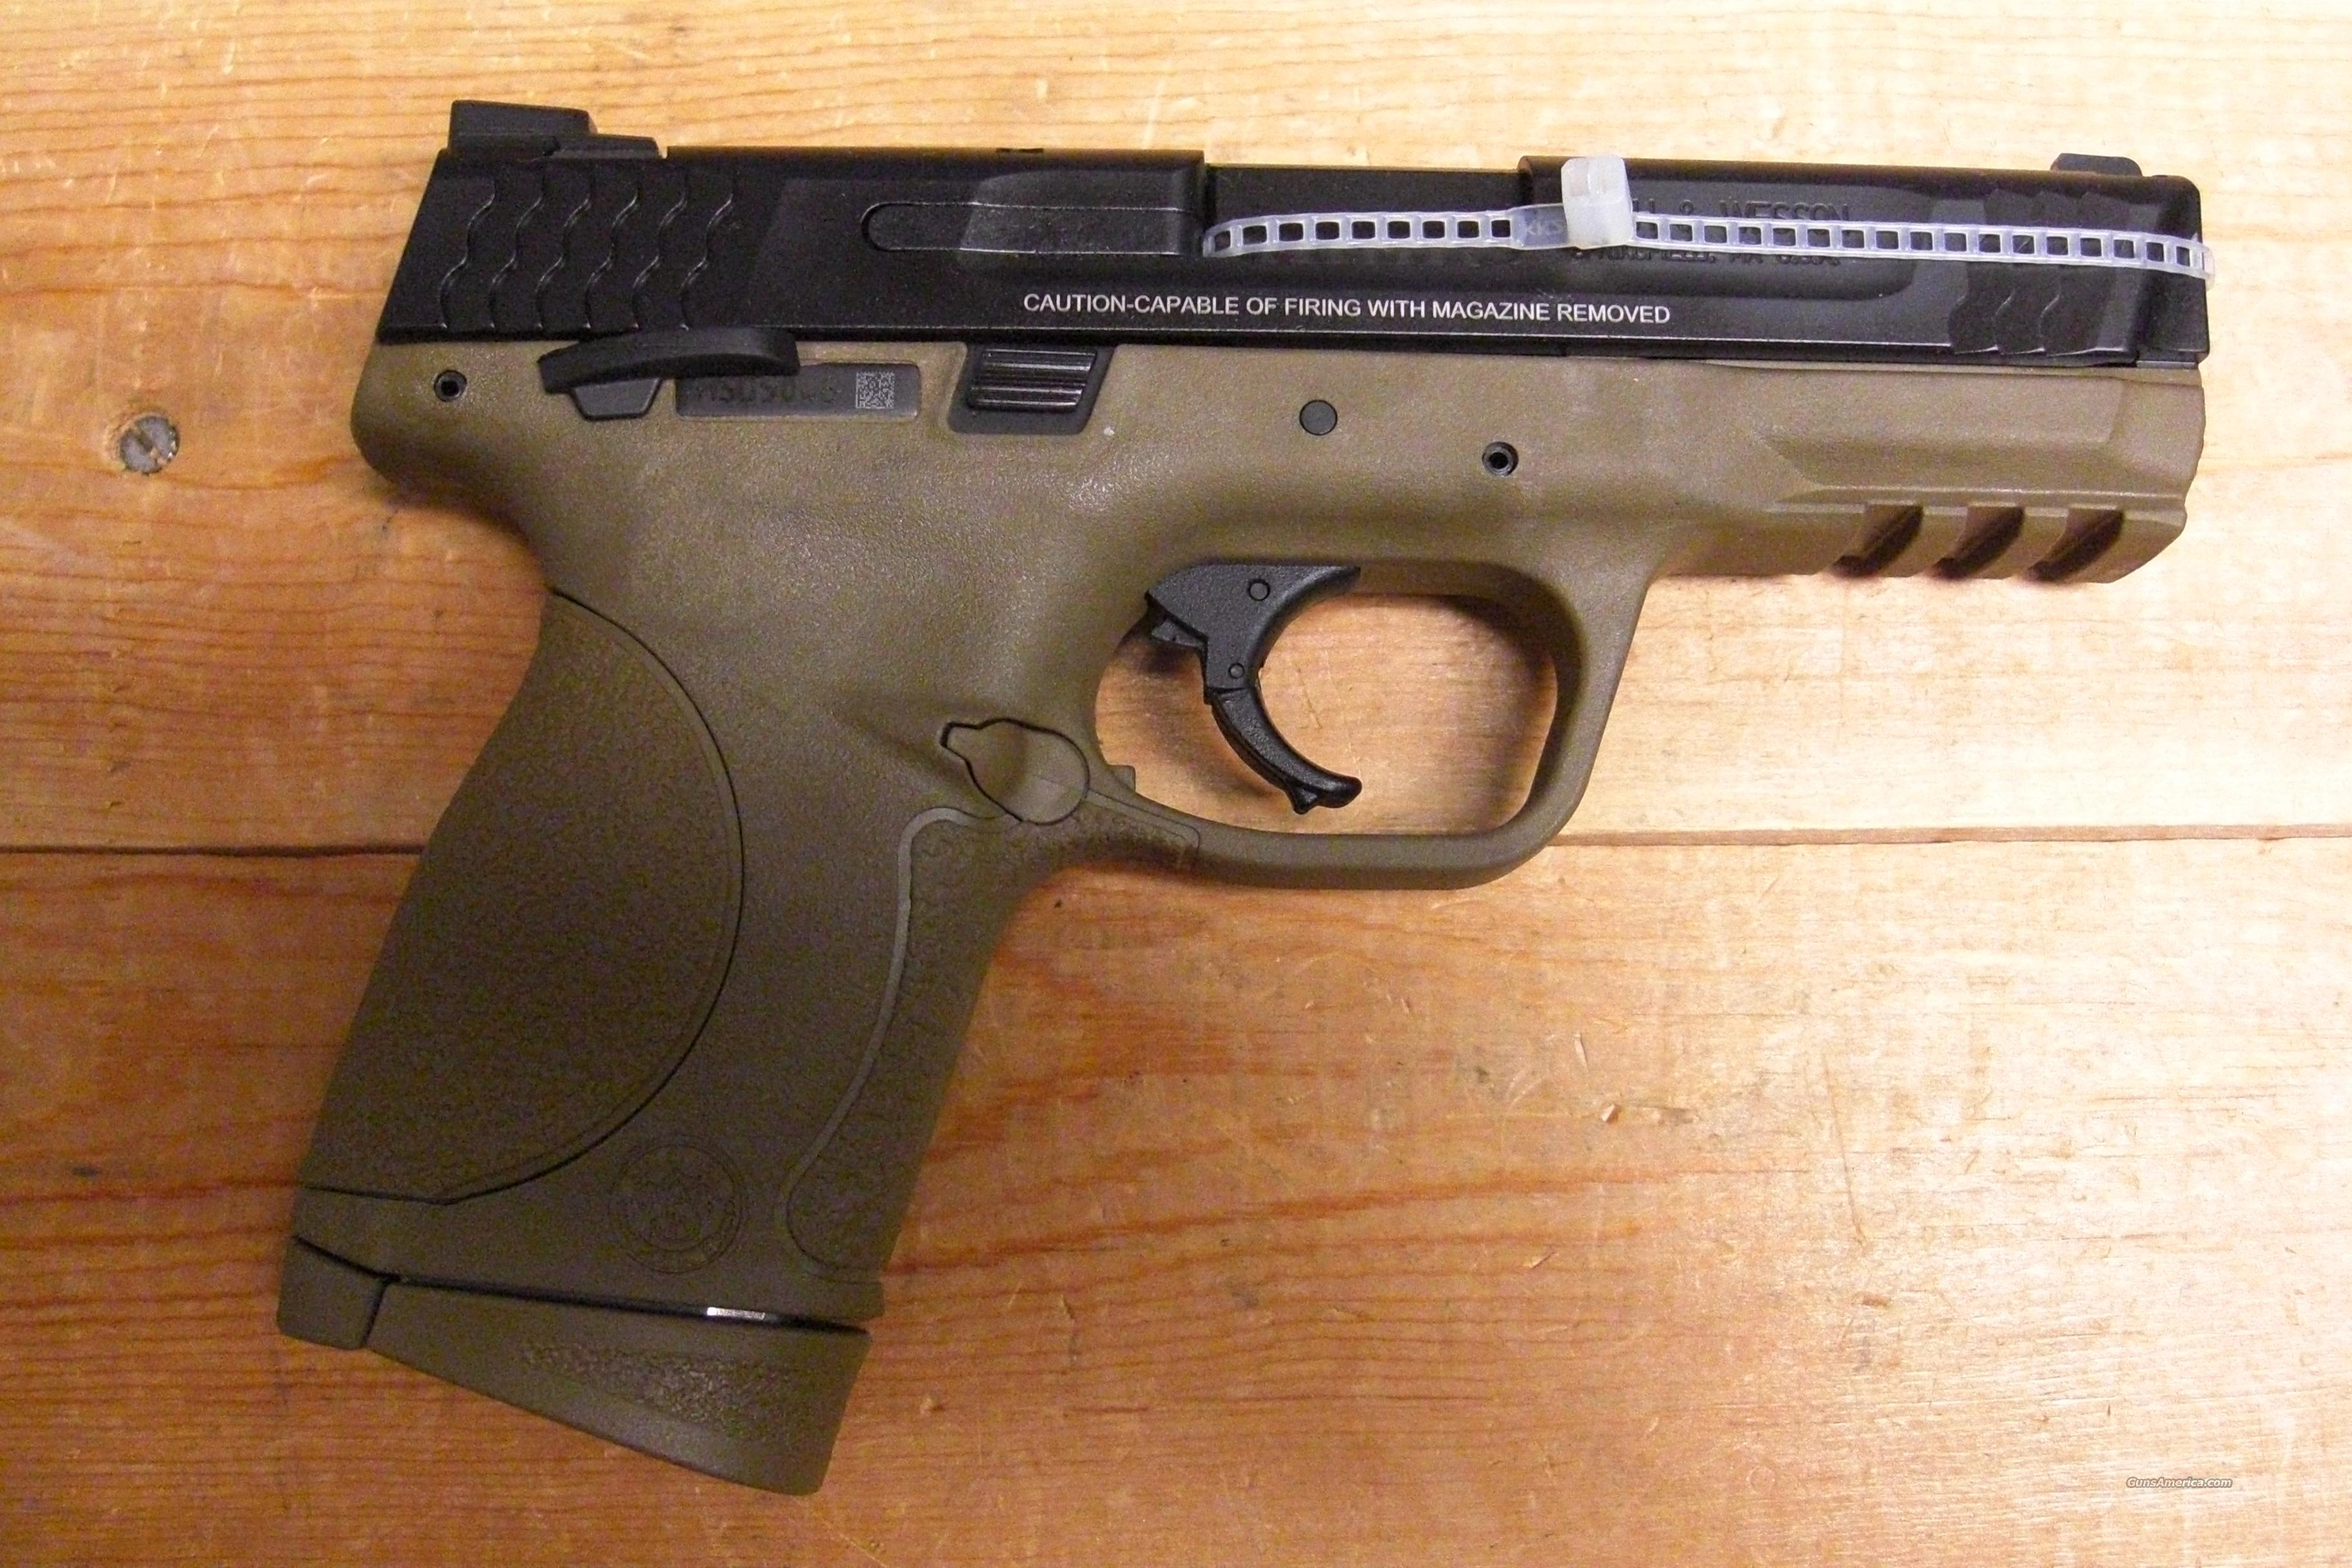 M & P 45C w/ambi-safety, FDE finish  Guns > Pistols > Smith & Wesson Pistols - Autos > Polymer Frame